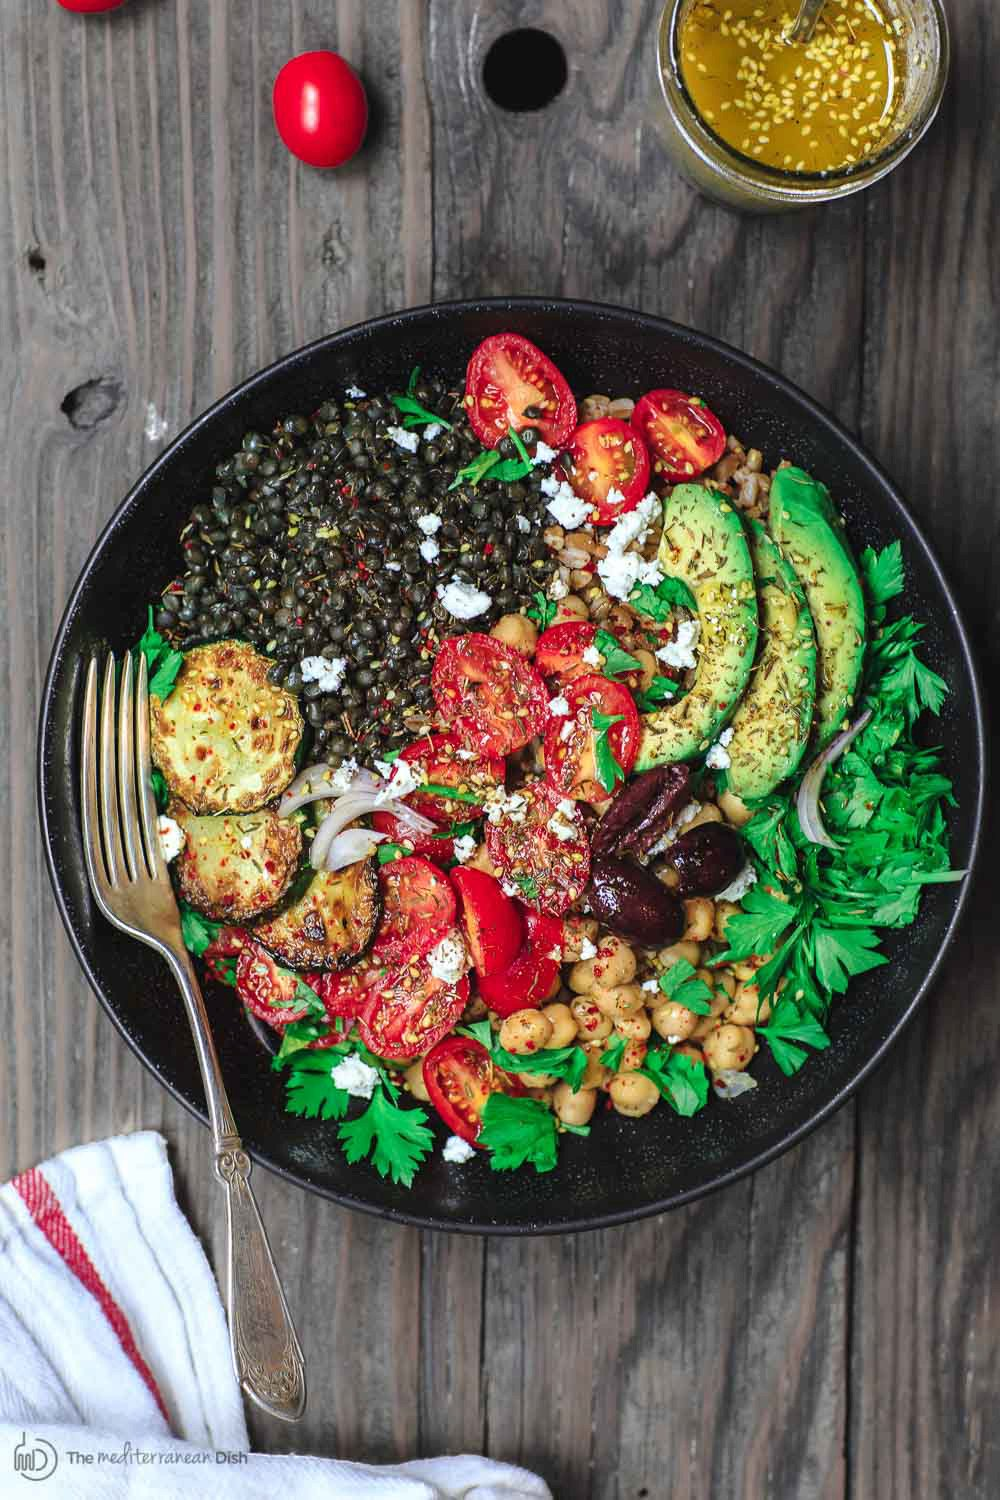 Mediterranean Style Grain Bowls Recipe with lentils and chickpeas